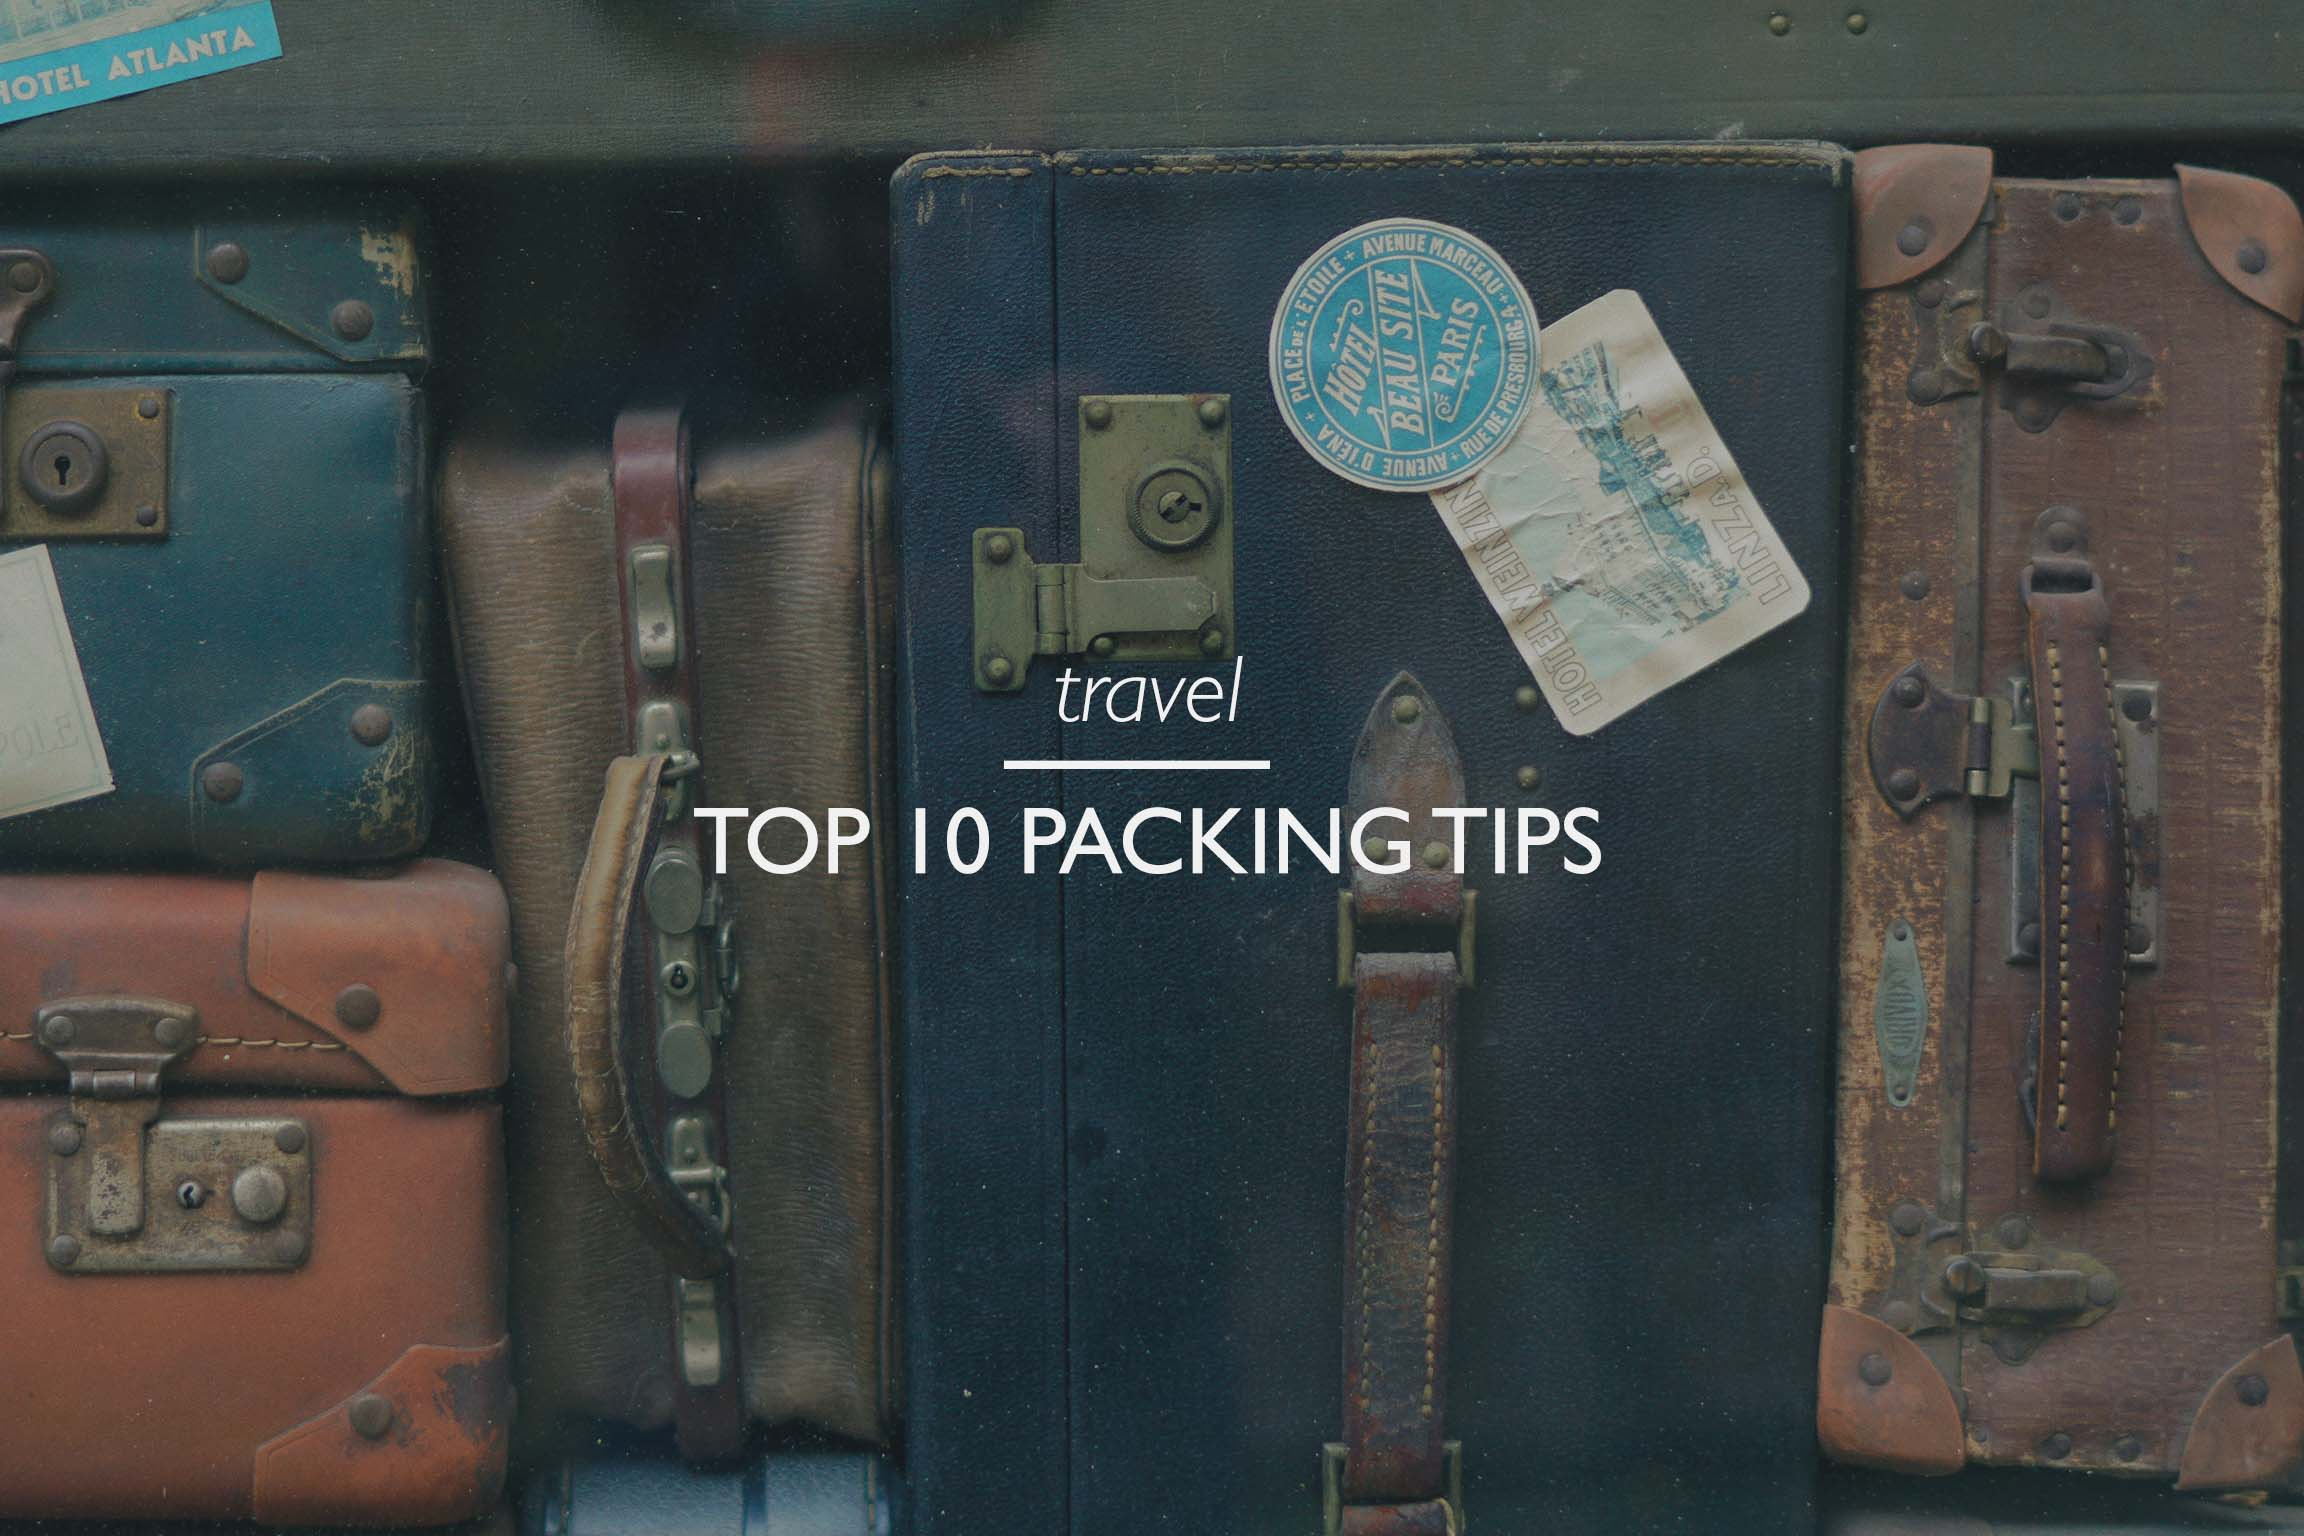 Copy of Copy of Copy of Copy of Copy of Copy of Top 10 Packing Tips